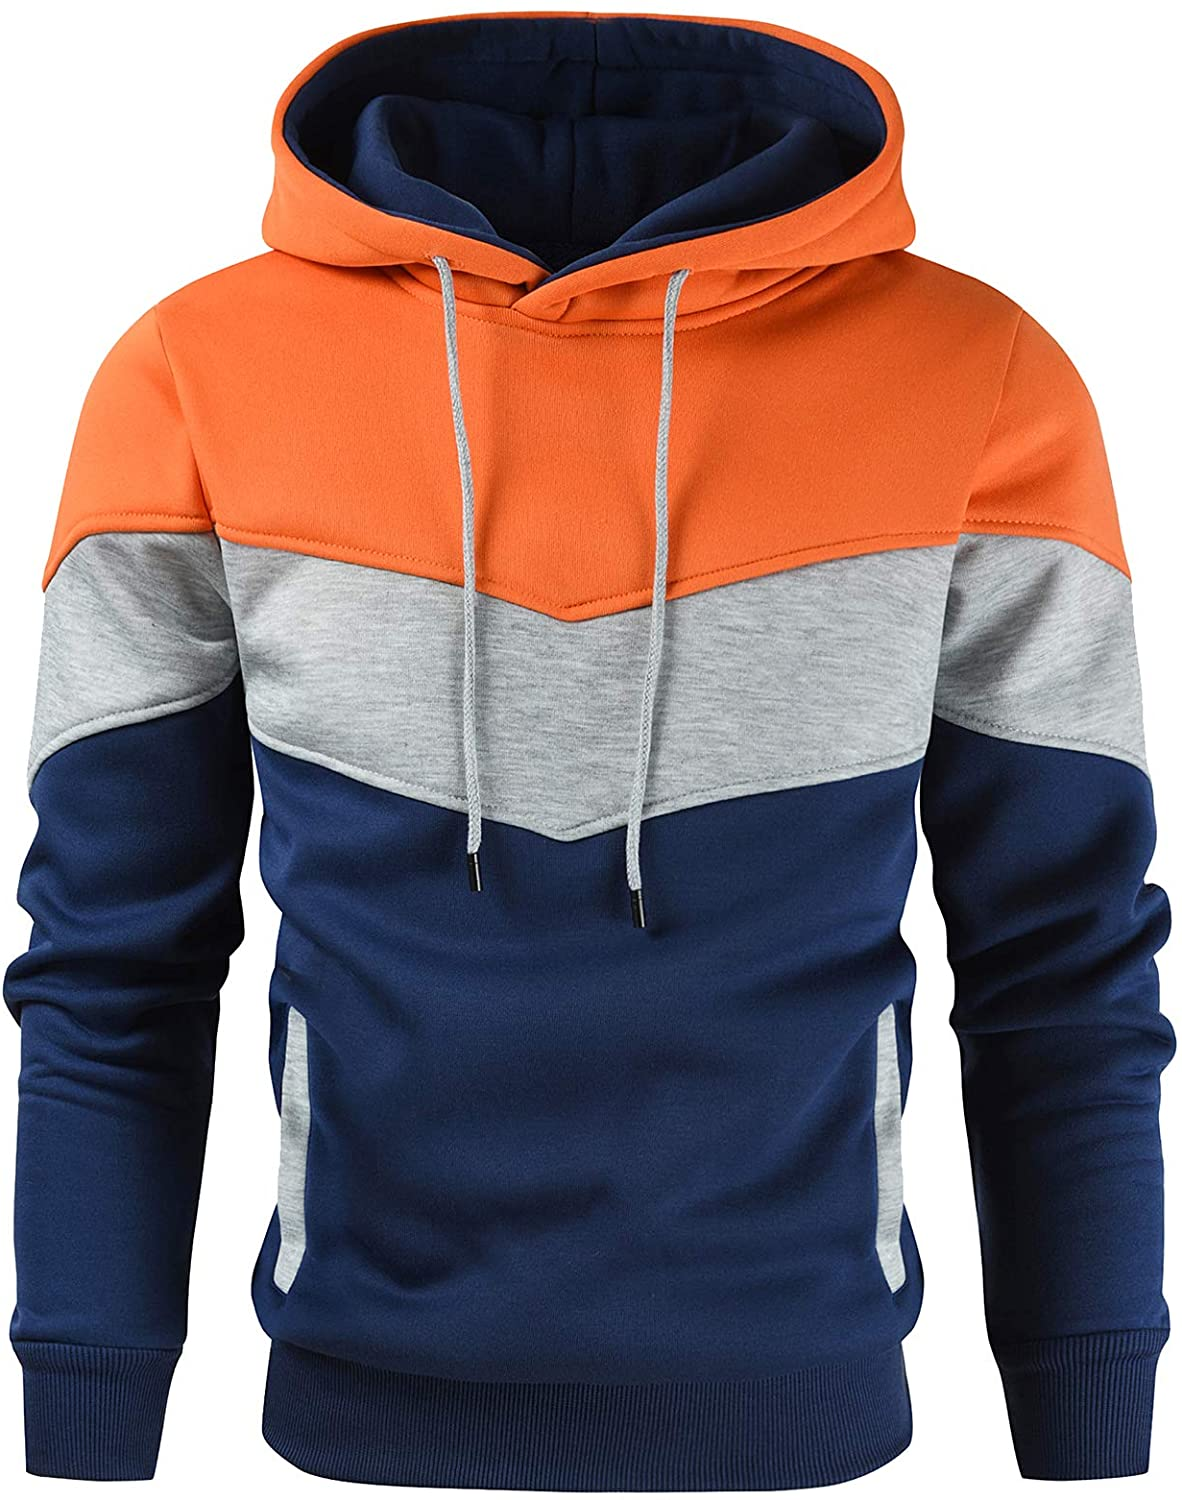 Gesean Men's Novelty Color Block Pullover Fleece Hoodie Popular products Outlet ☆ Free Shipping Sle Long